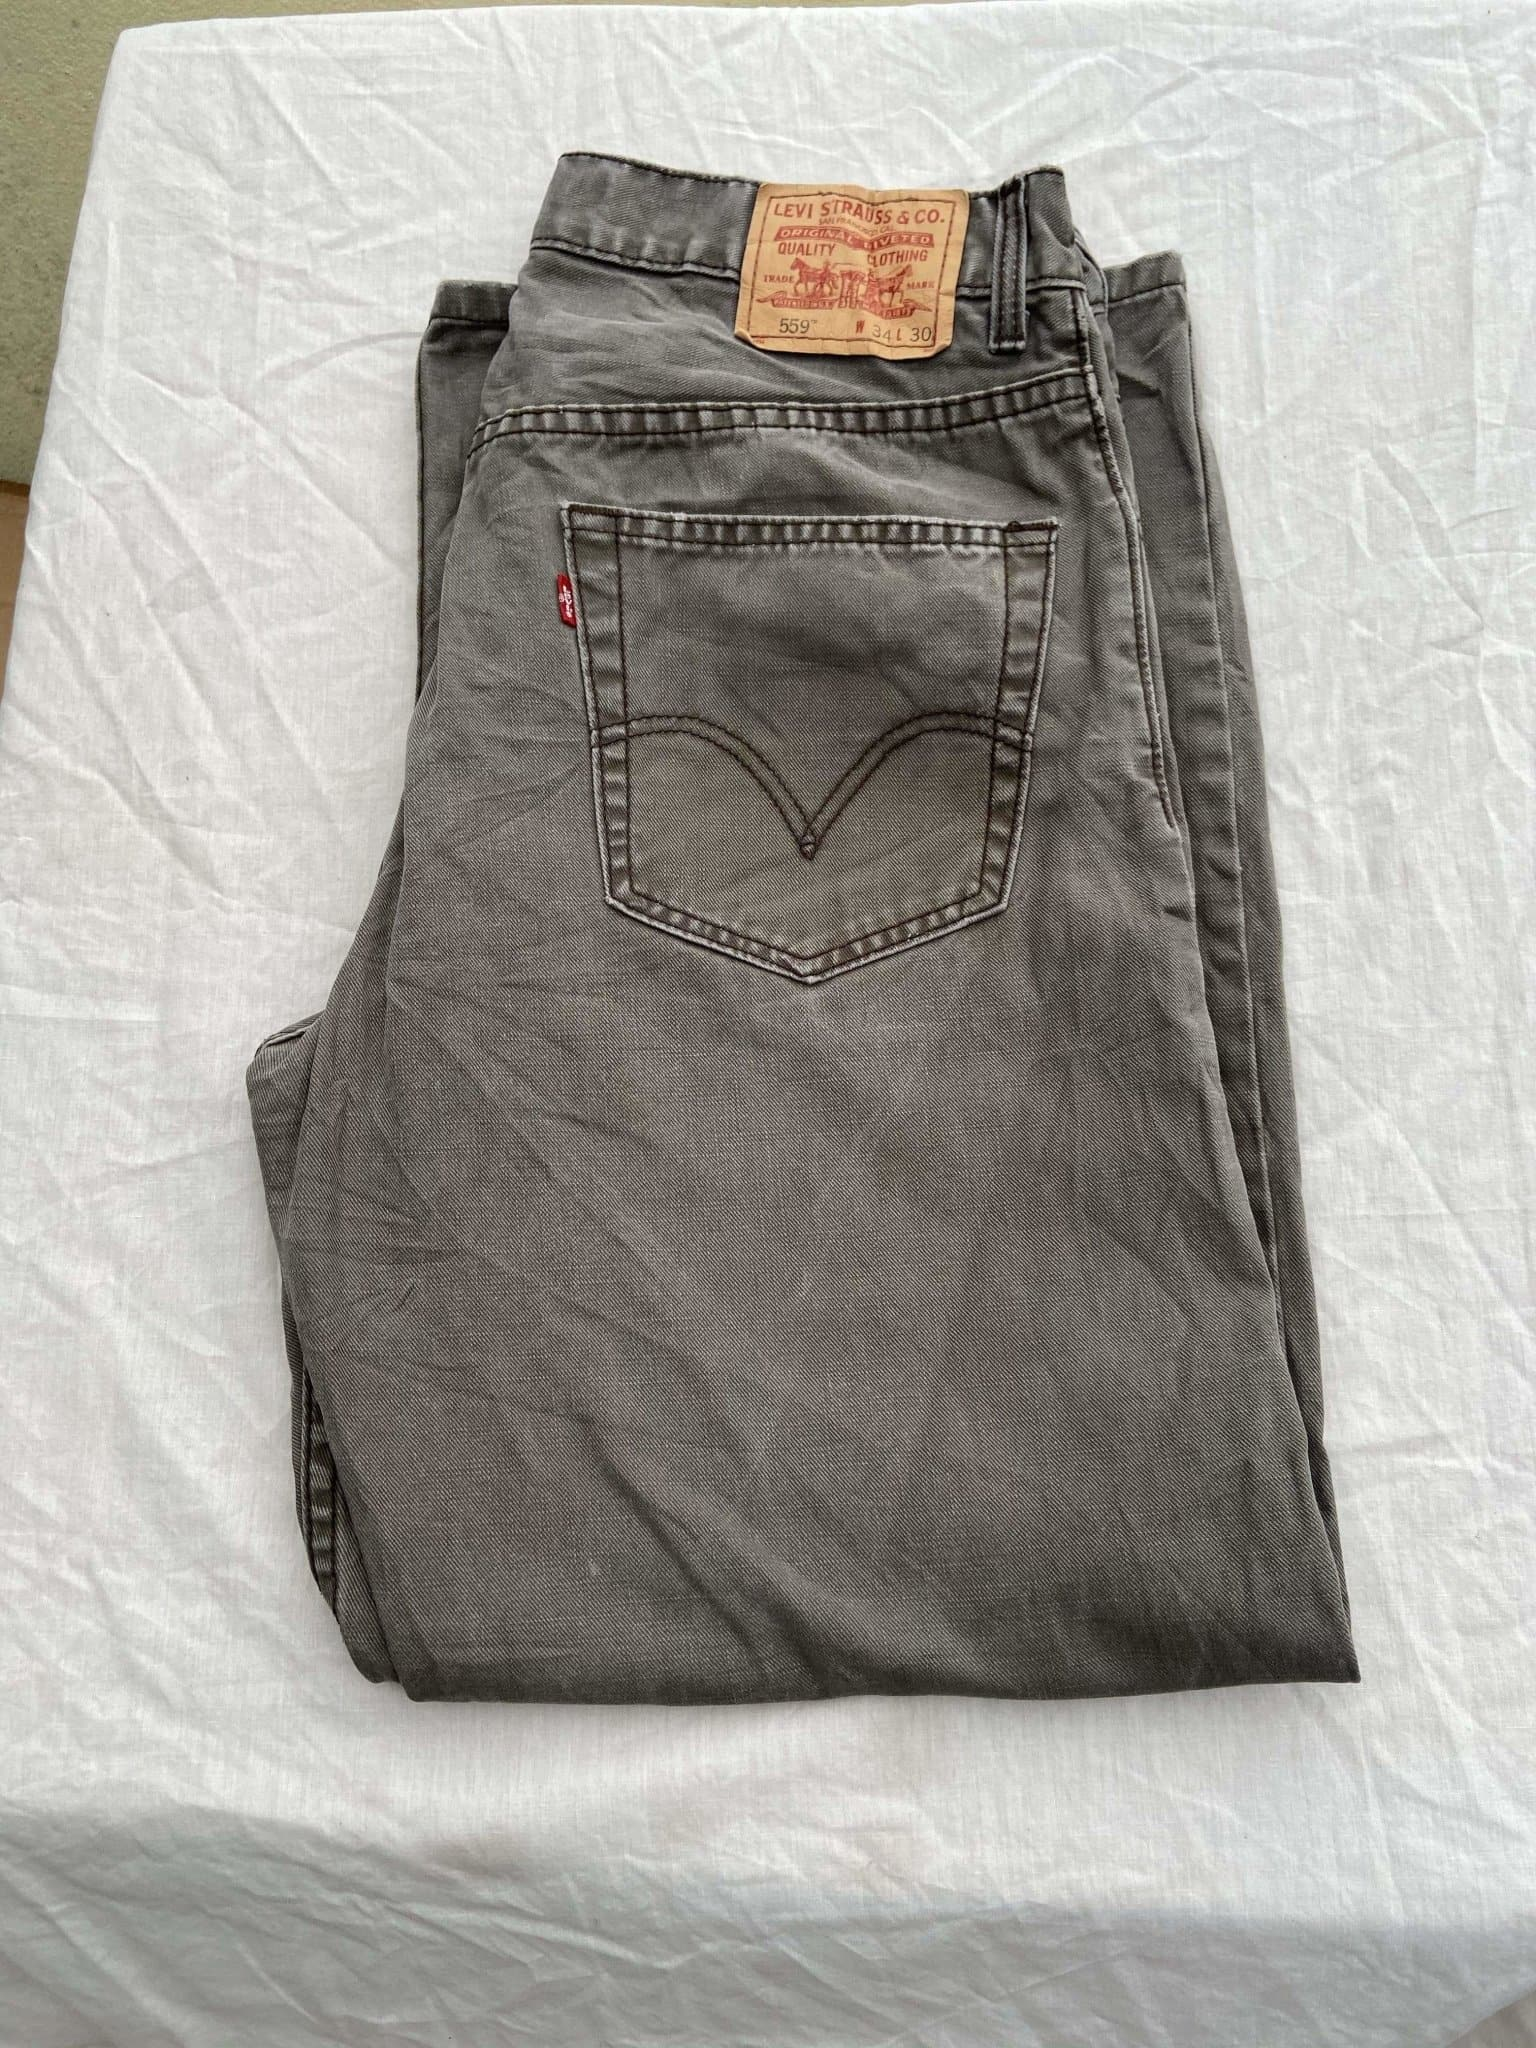 Vintage Levi's 559 Jeans W34 L30 - Discounted Deals UK